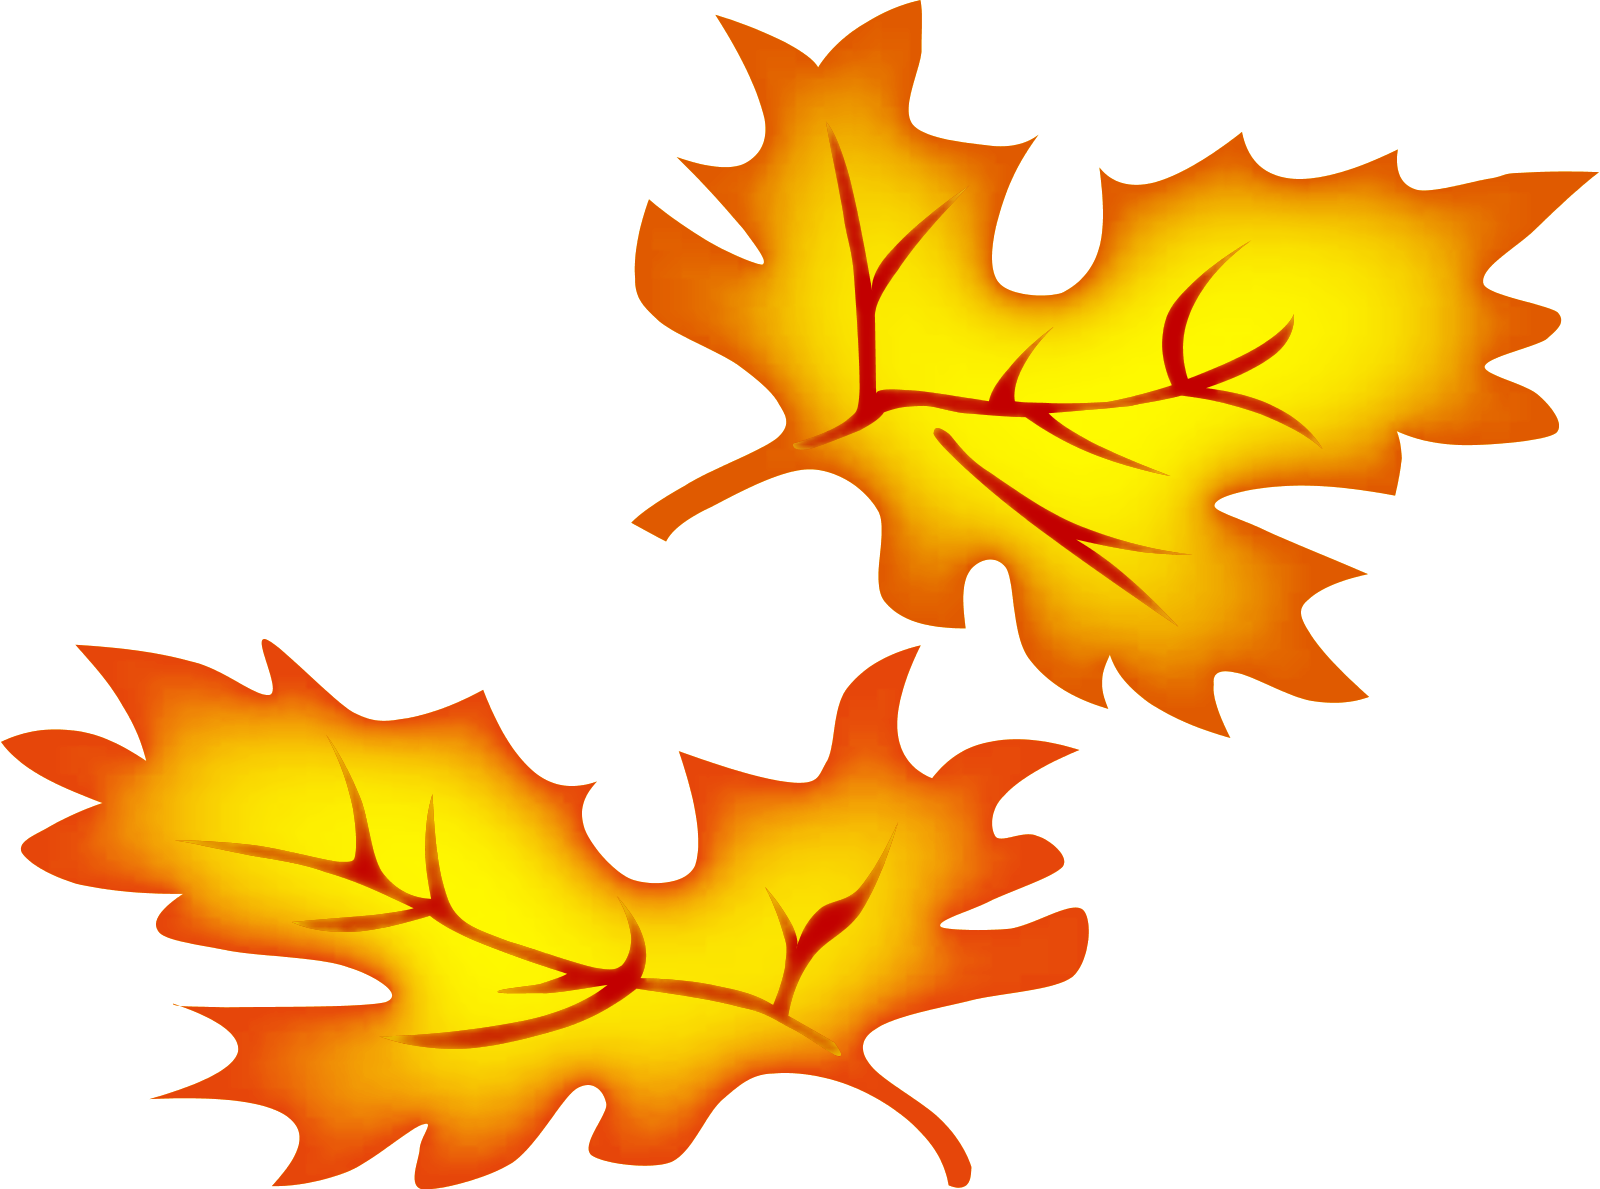 Vector pumpkins autumn. Free images of falling